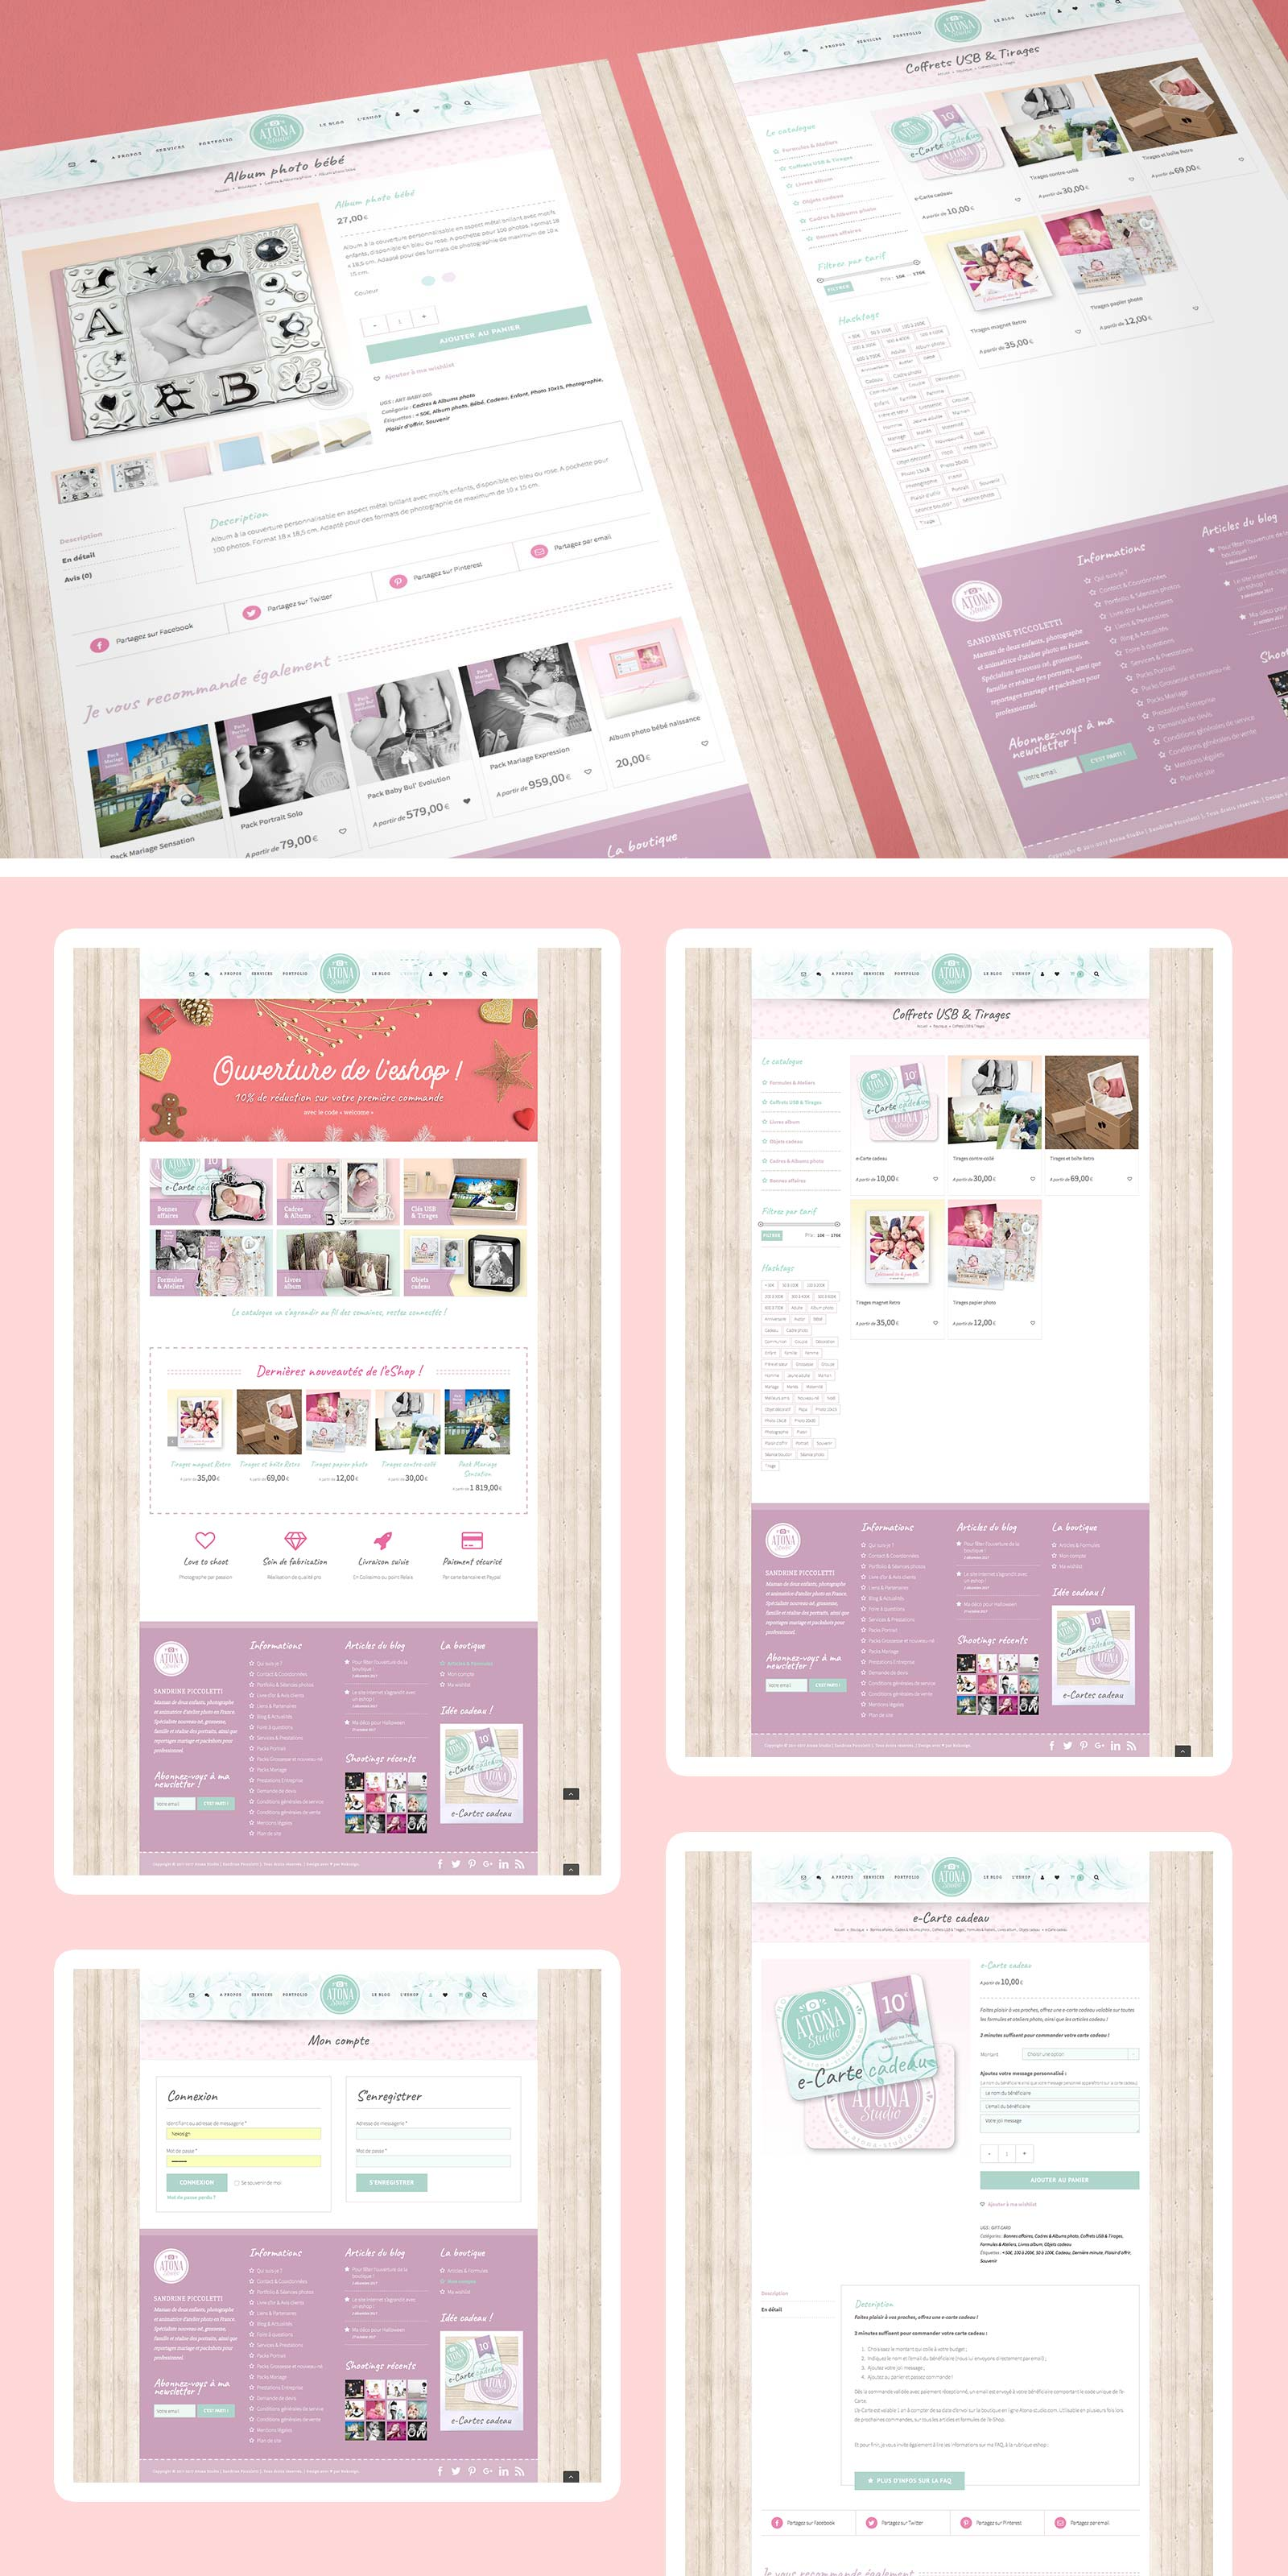 Pages de l'eshop Atona Studio